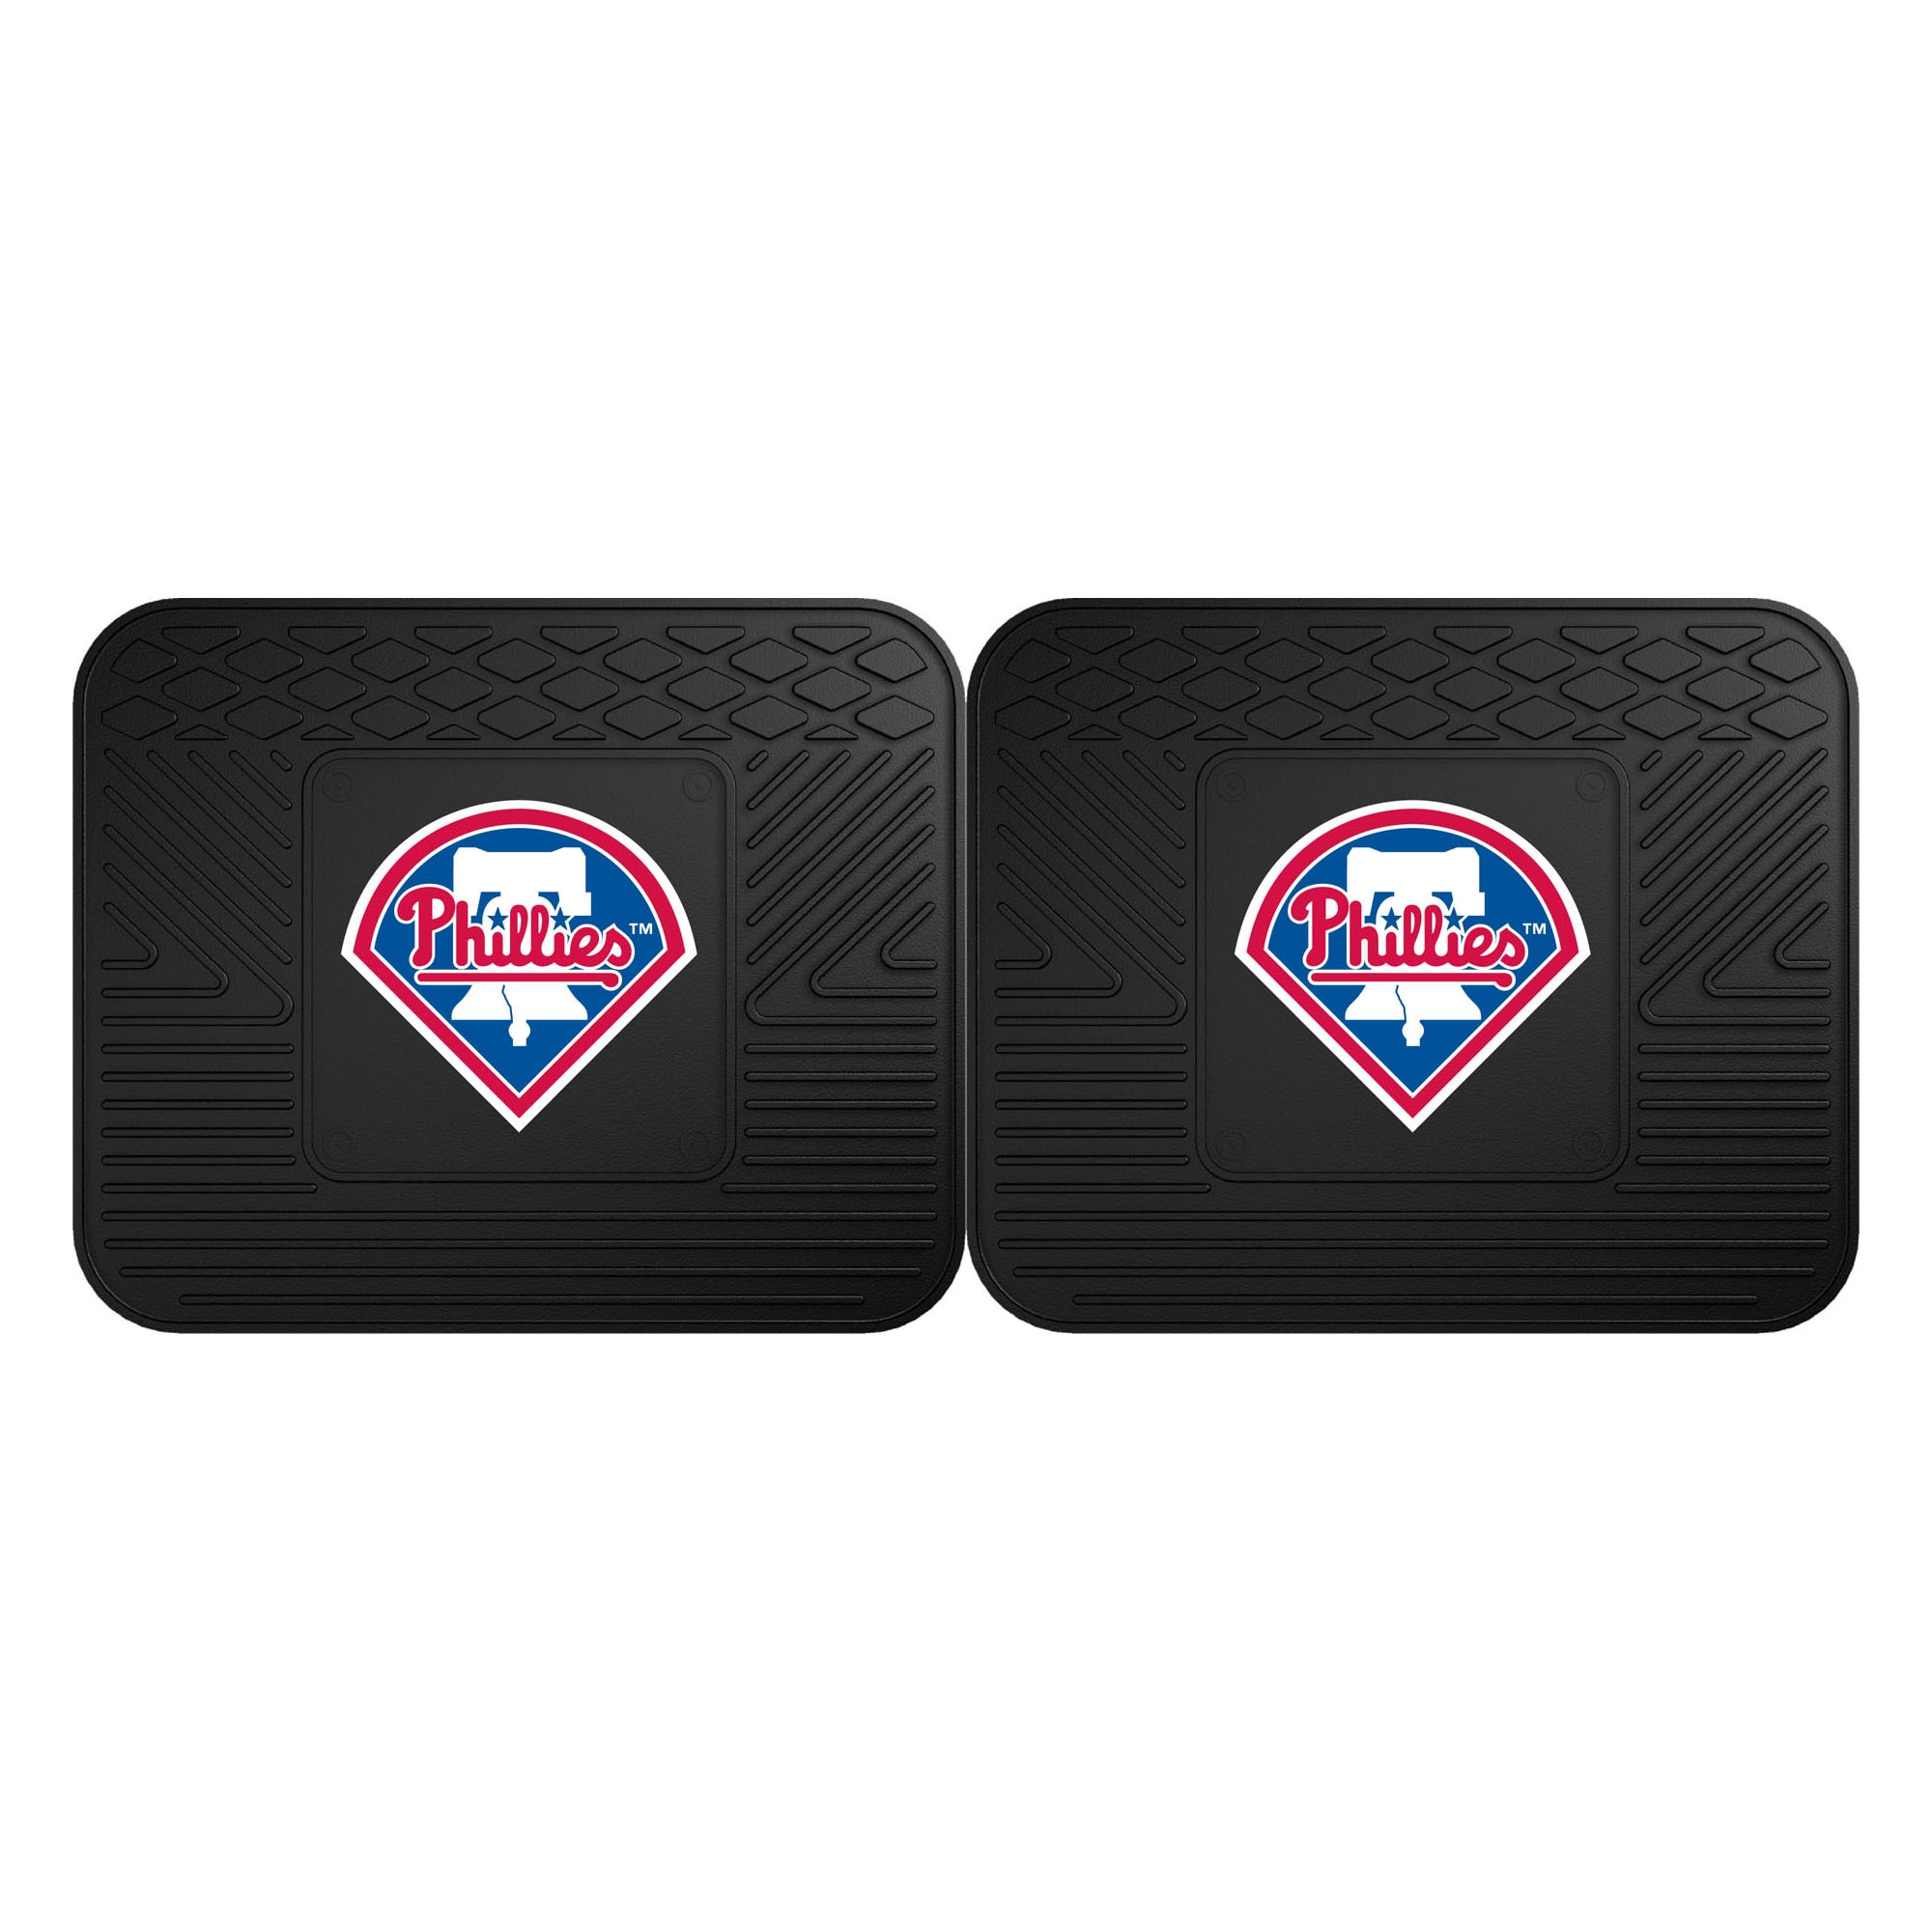 Philadelphia Phillies 2-Pack Utility Mat Set